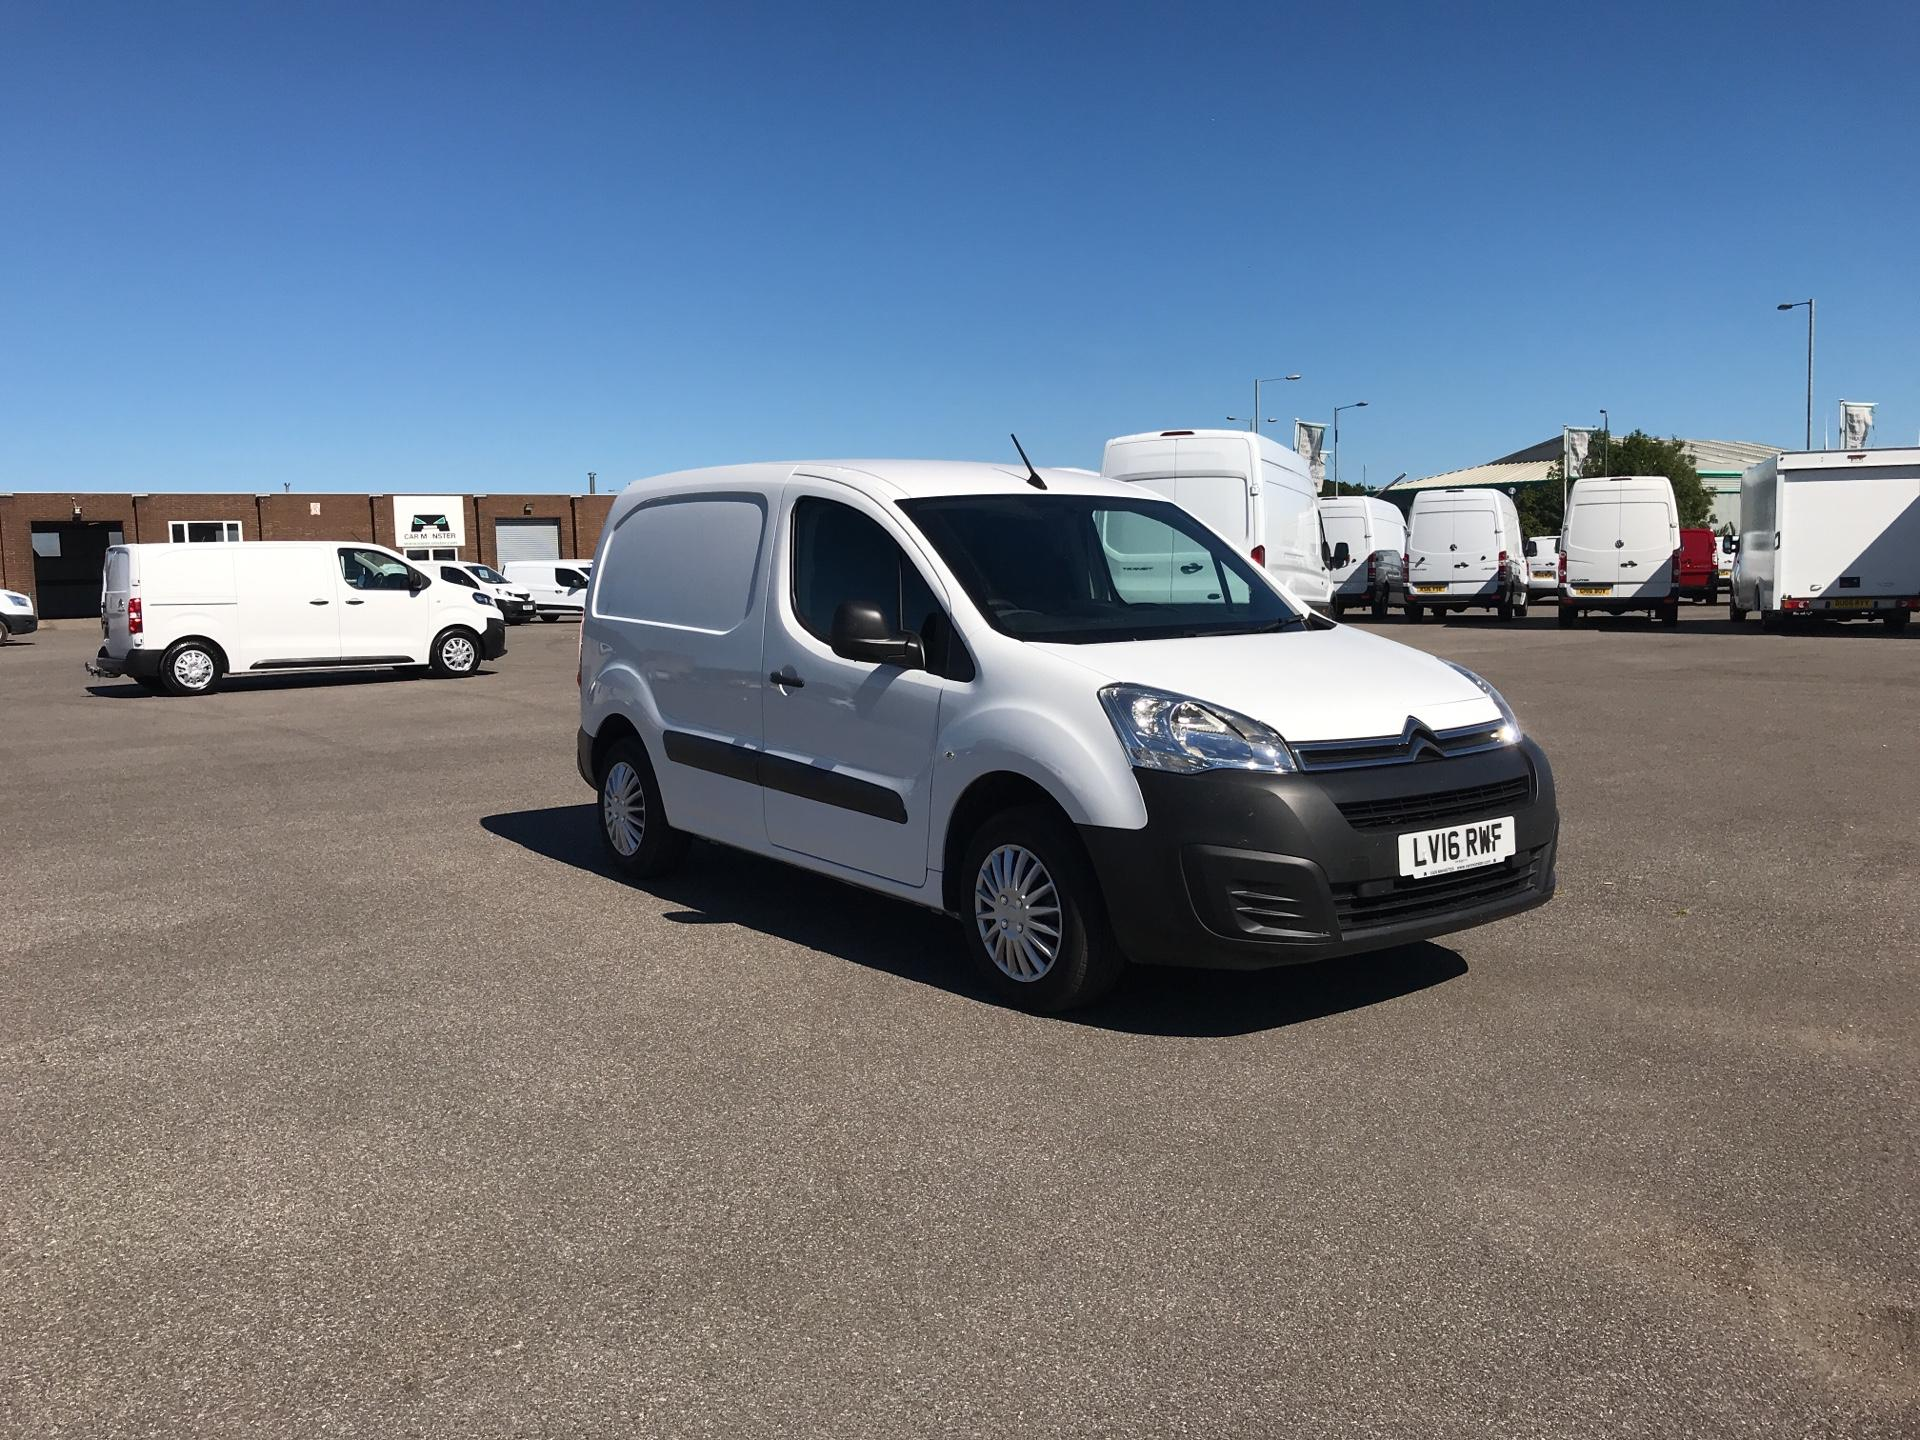 2016 Citroen Berlingo 625 KG 1.6 HDI 75PS ENTERPRISE VAN EURO 4/5 (LV16RWF)